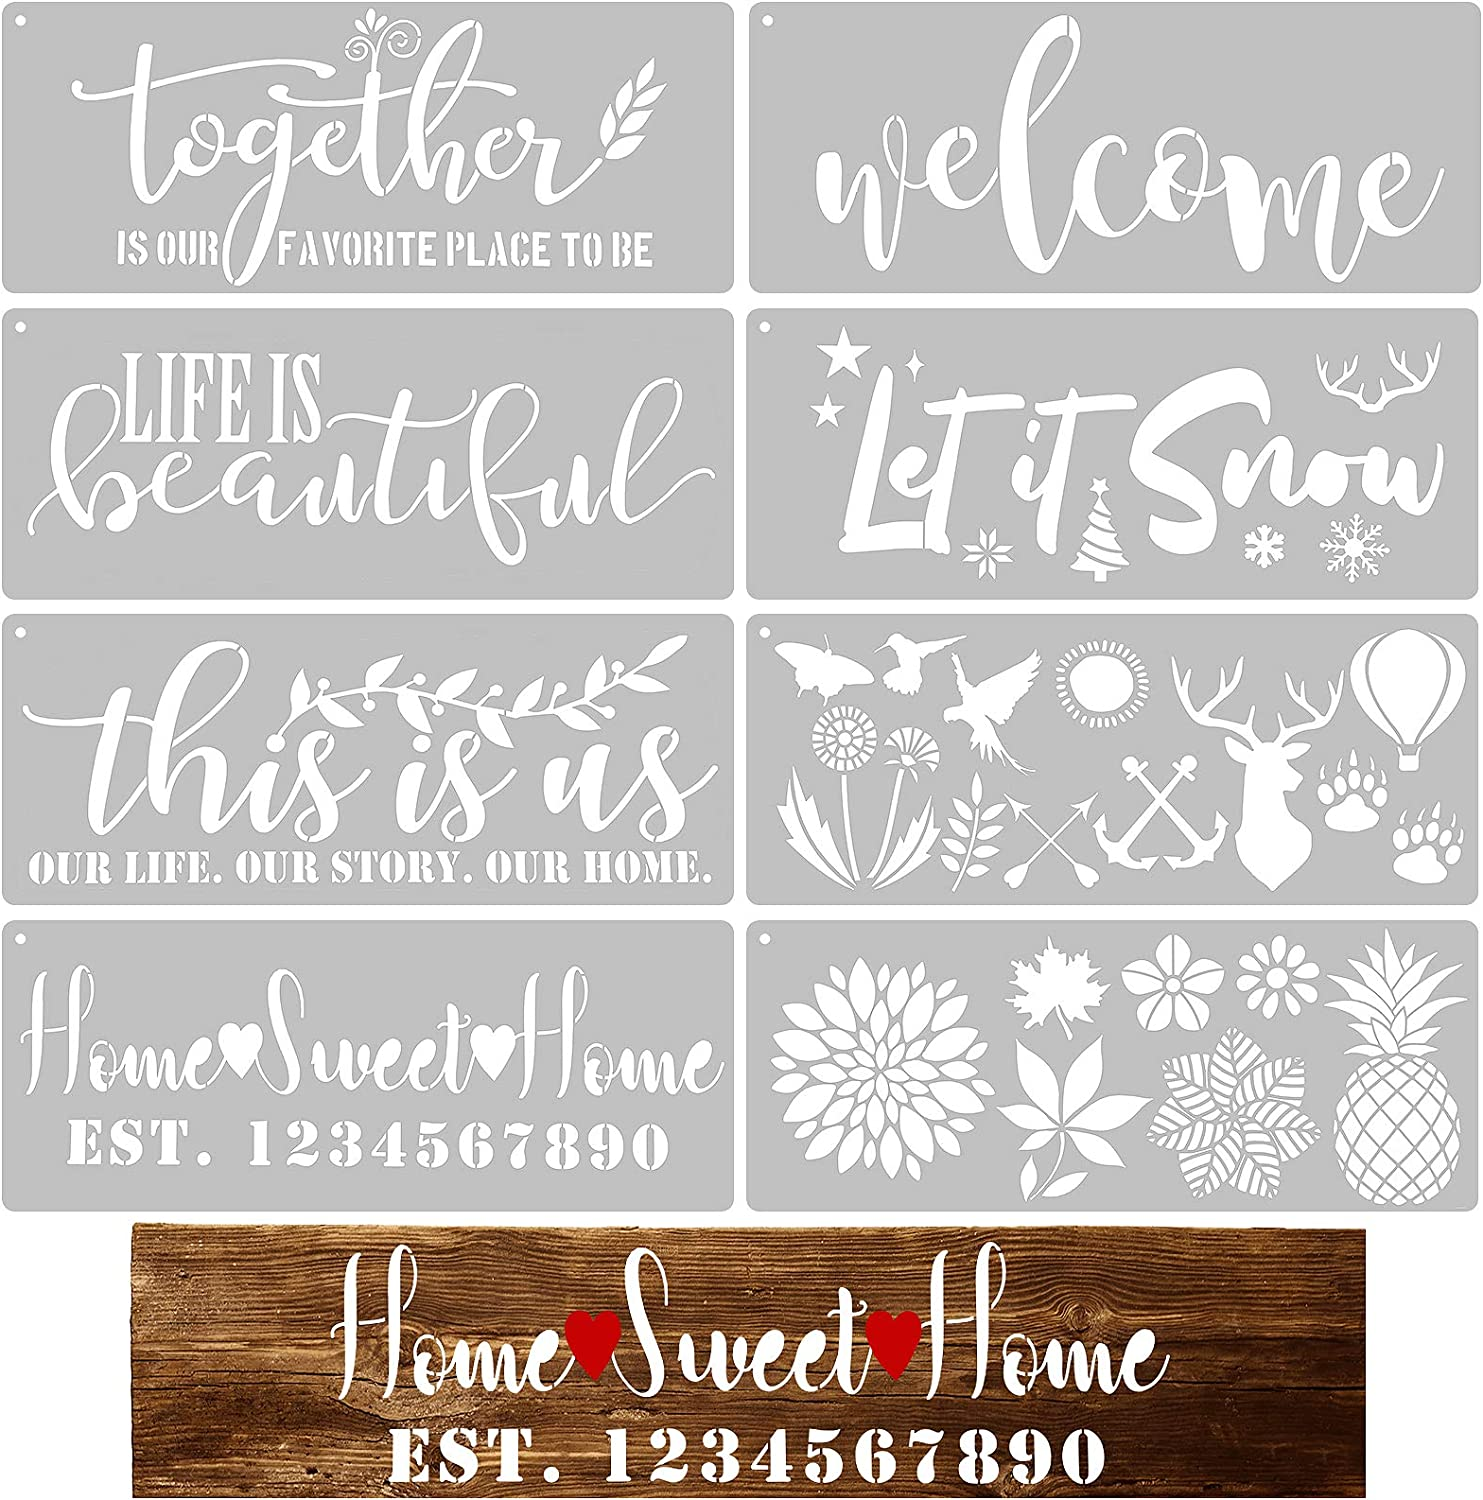 8 Pieces Welcome Sign Stencil Funny Family Sign Stencil Reusable Stencils for Painting on Wood Front Door, Porch or Outside Home Decor, Alphabet Flower Stencils